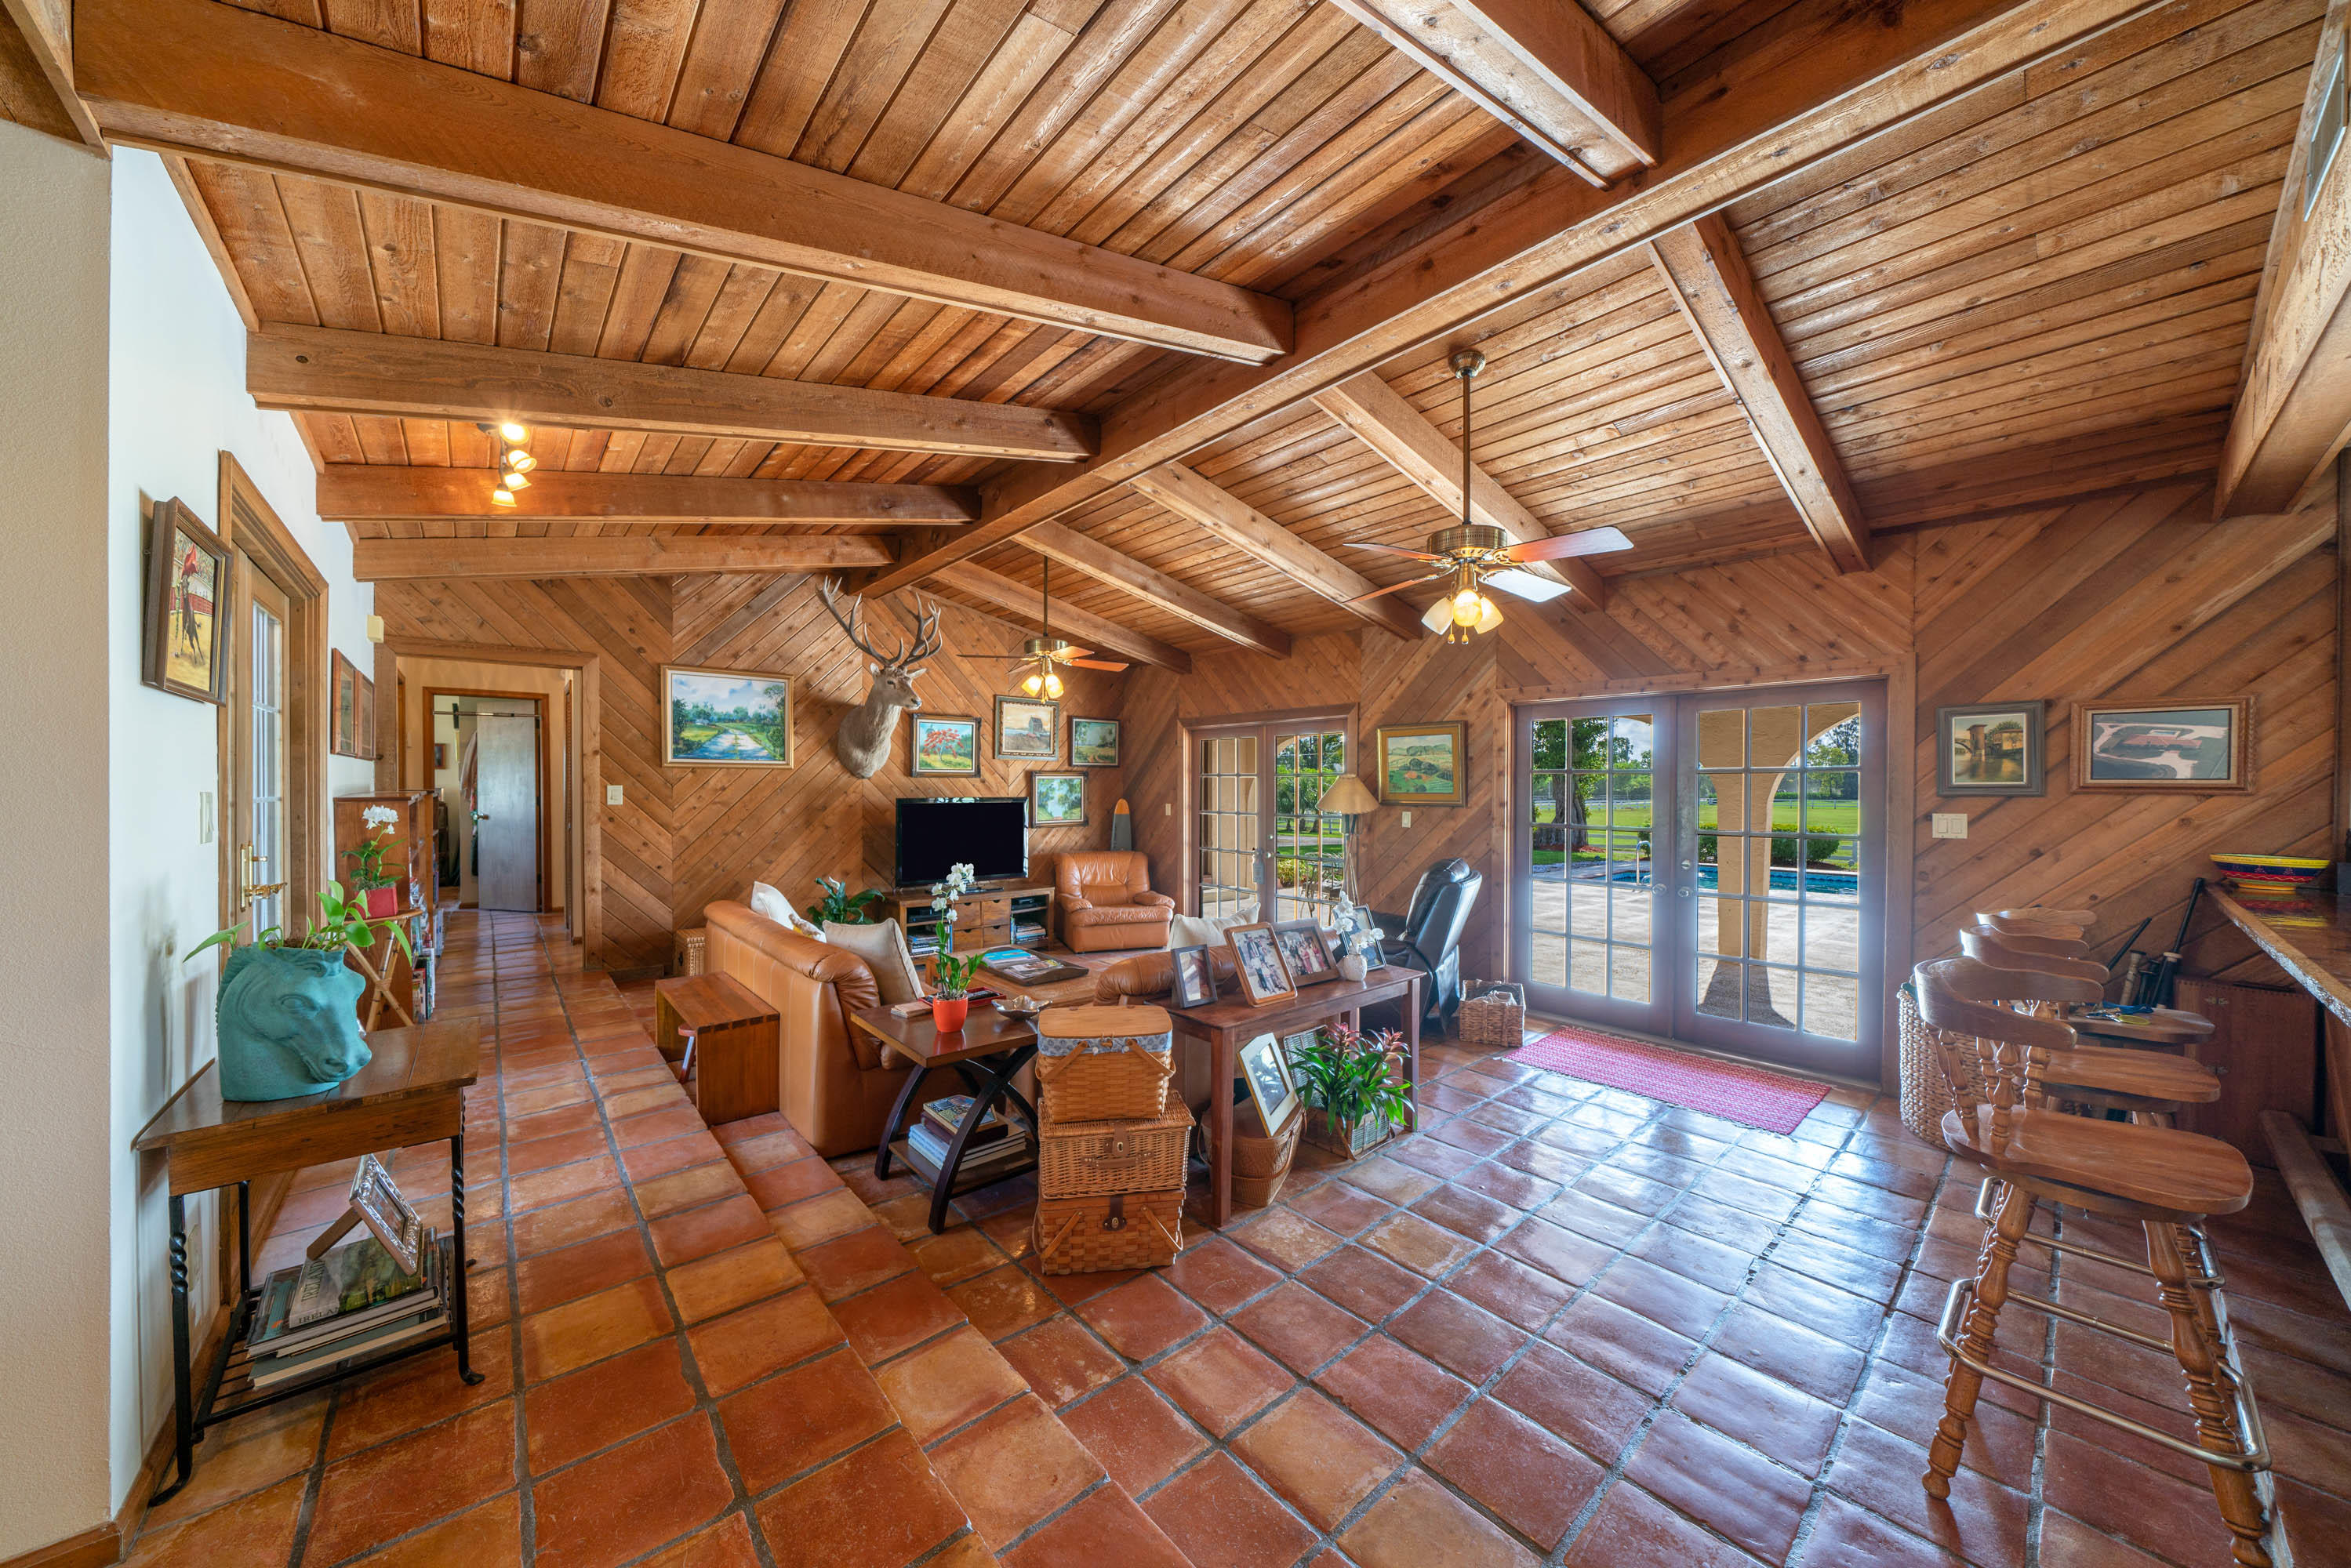 GLADE RANCHES REALTY